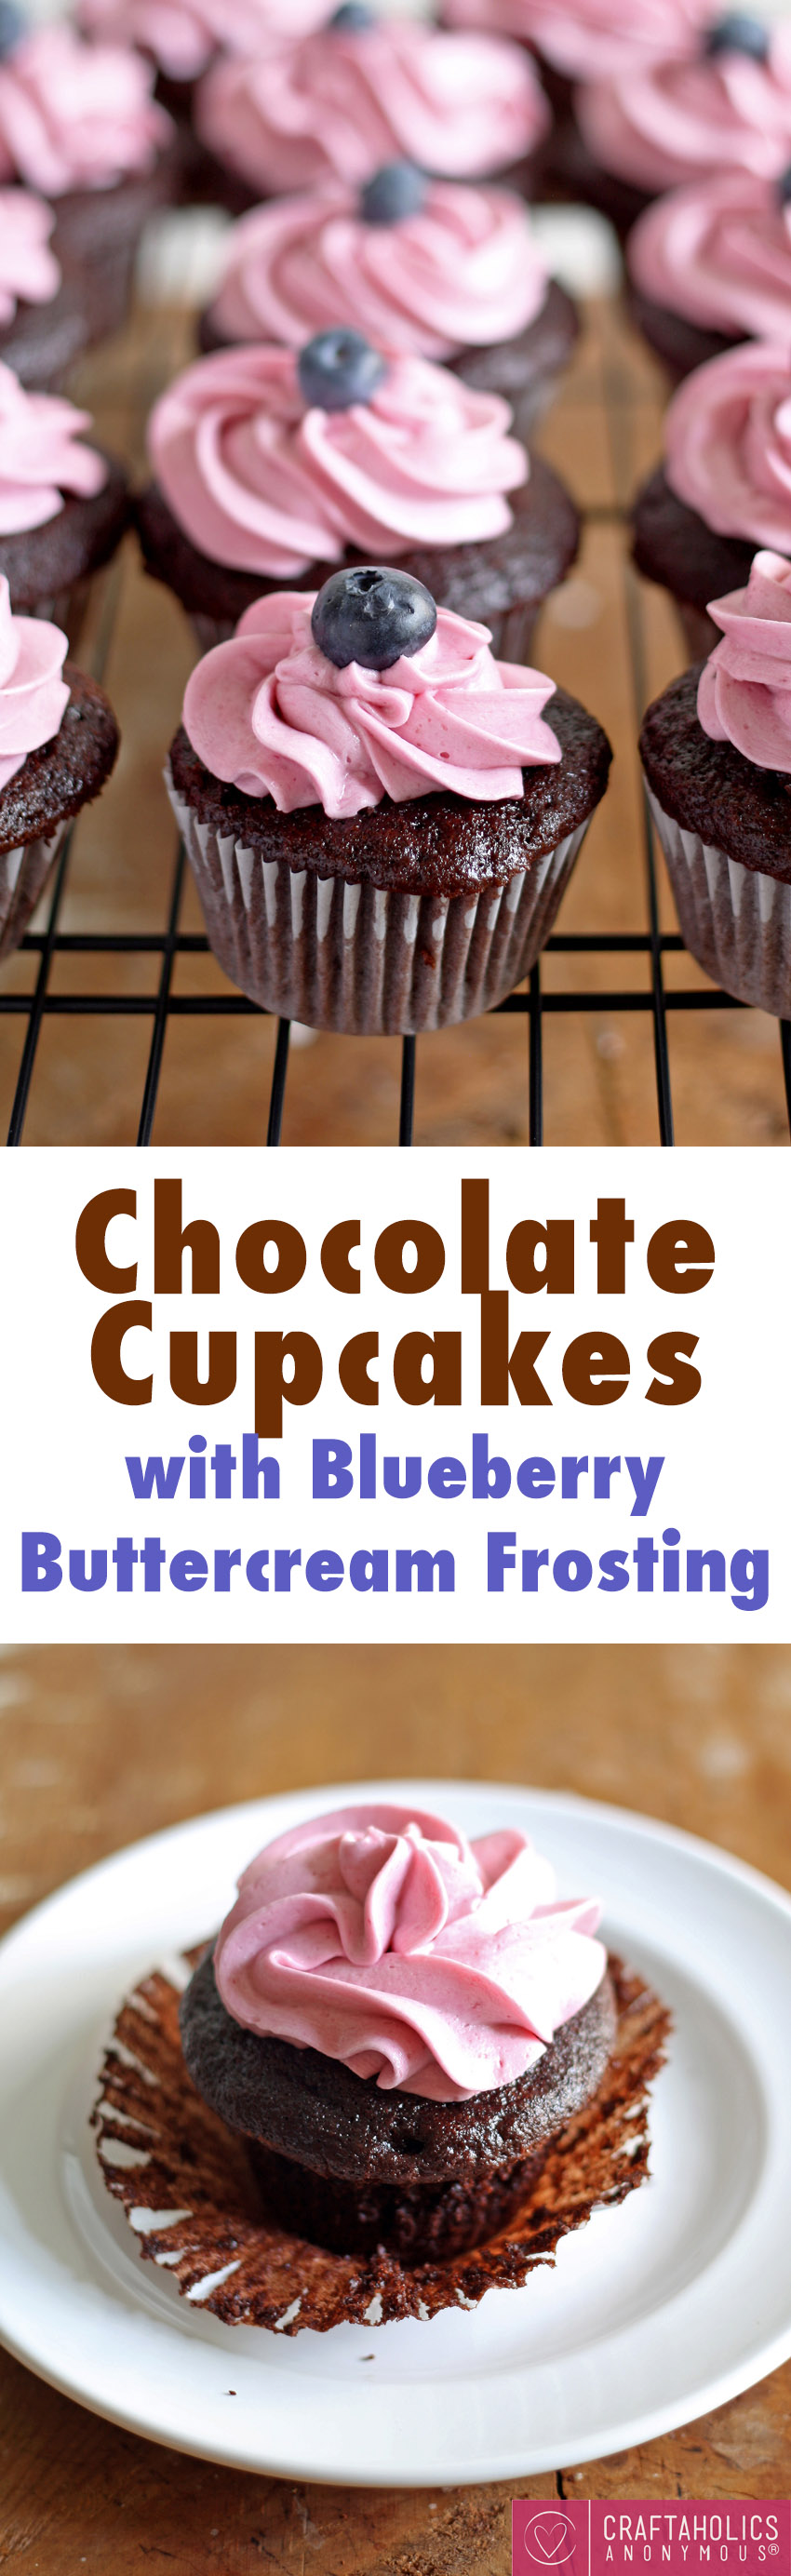 chocolate-cupcakes-with-blueberry-buttercream-frosting-pin